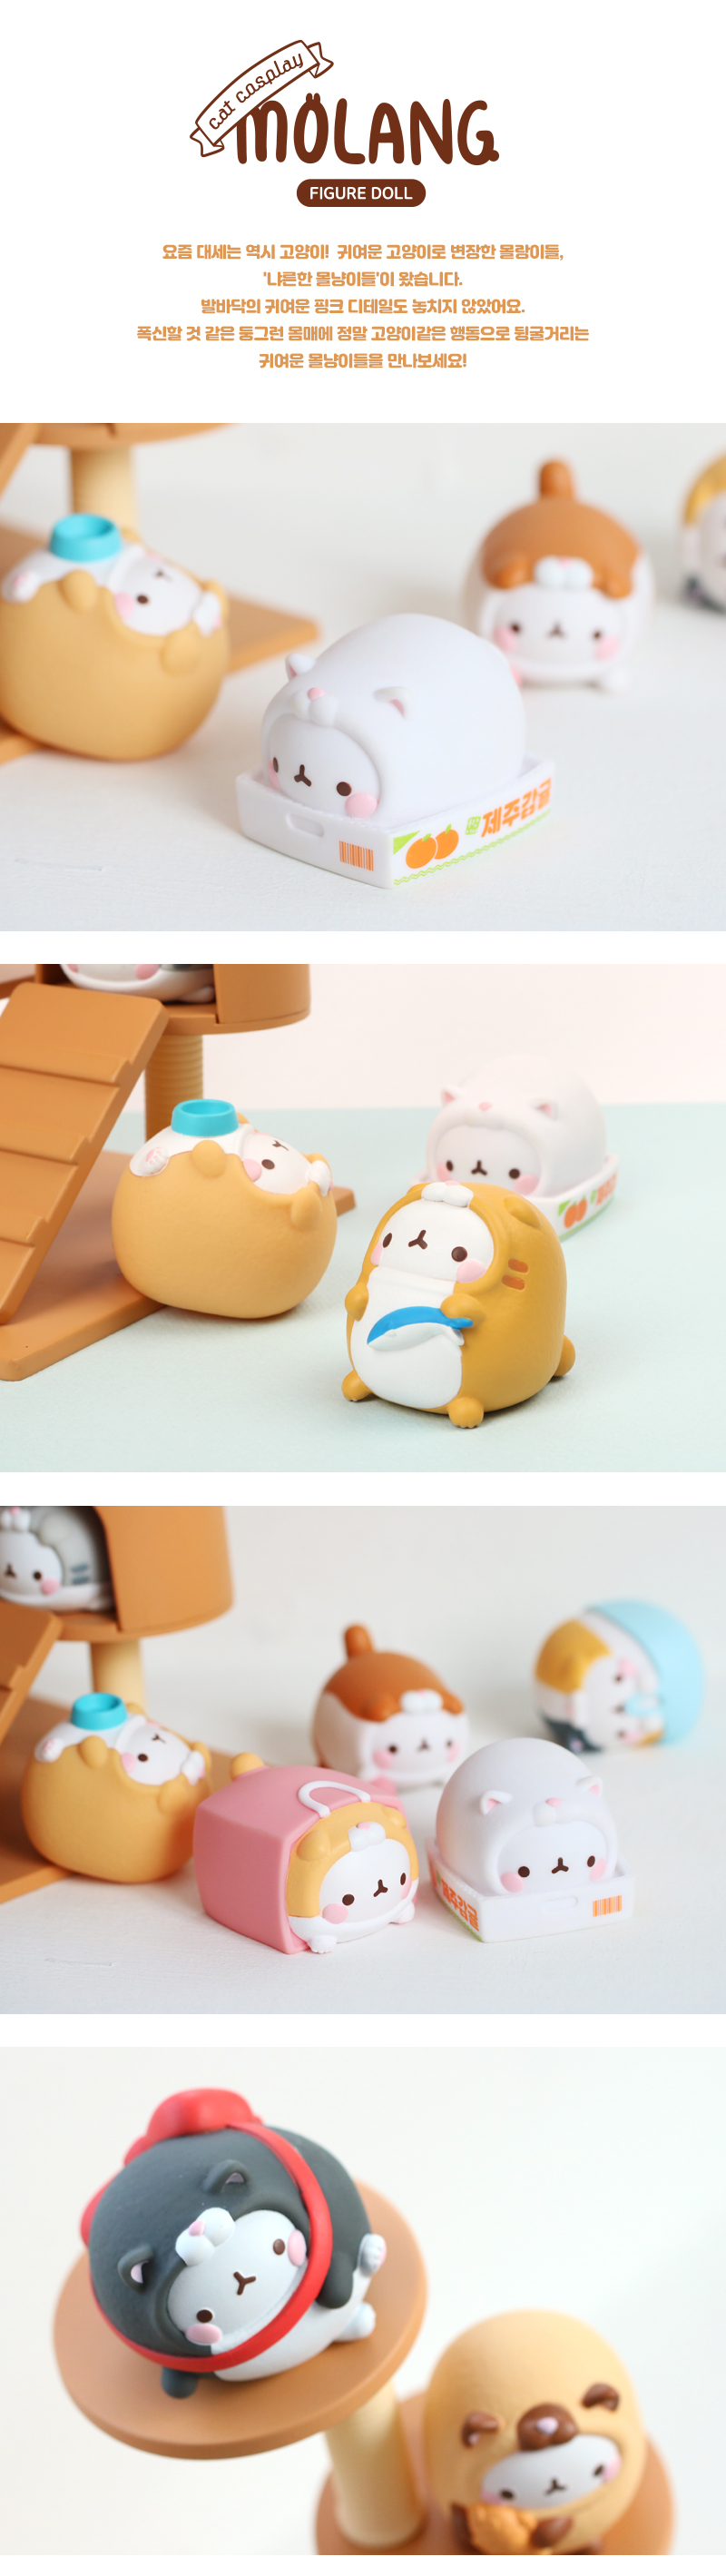 molang_figure_5th_02.jpg